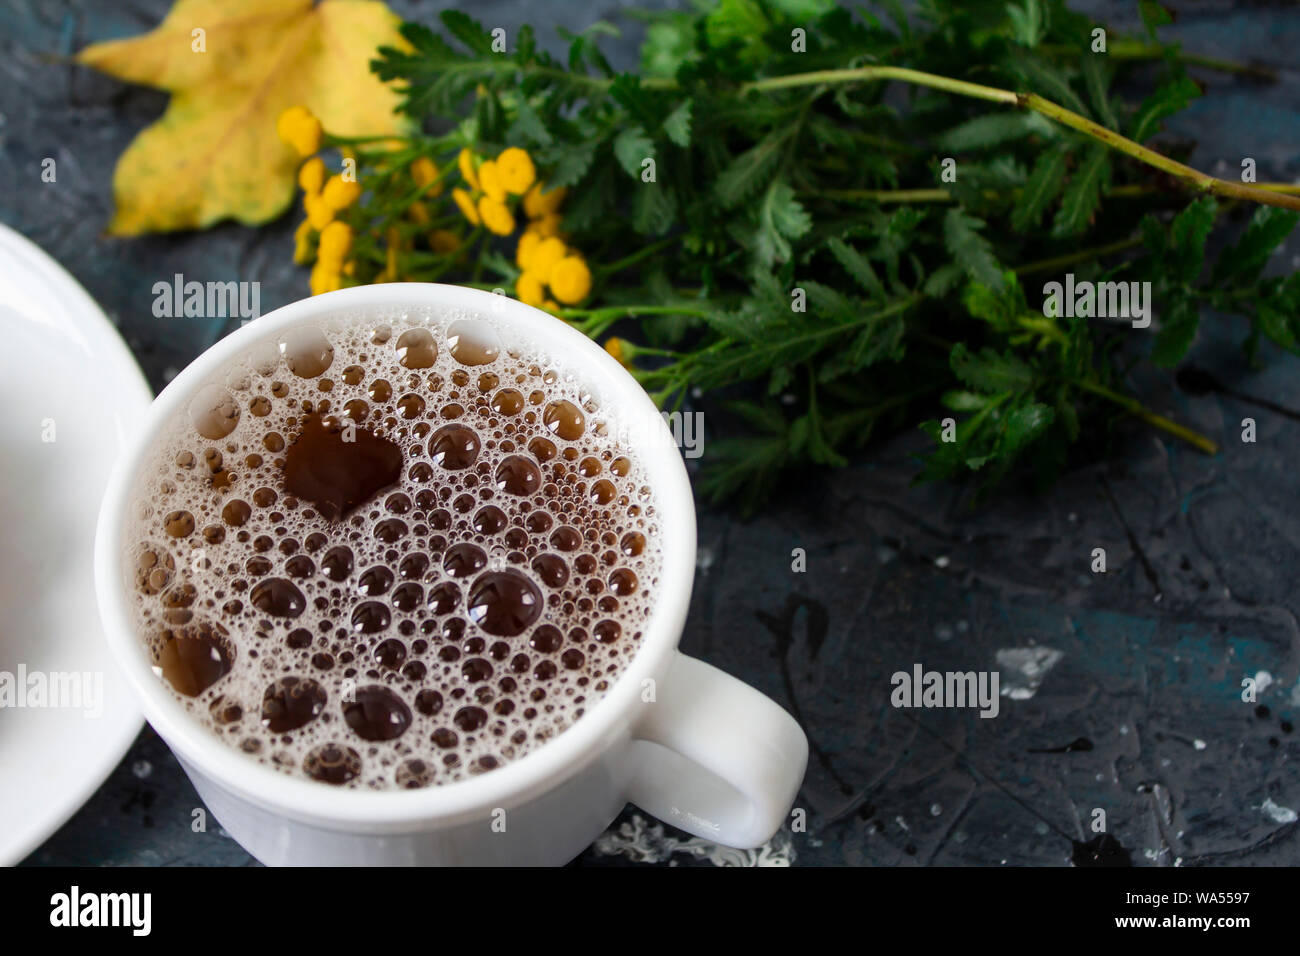 Tea. green Tea. Herbal tea. Mint leaf. Tea with apple flavor. Tea in a glass cup with apple blossoms and leaves dried tea sliced lime. herbs tea and m Stock Photo